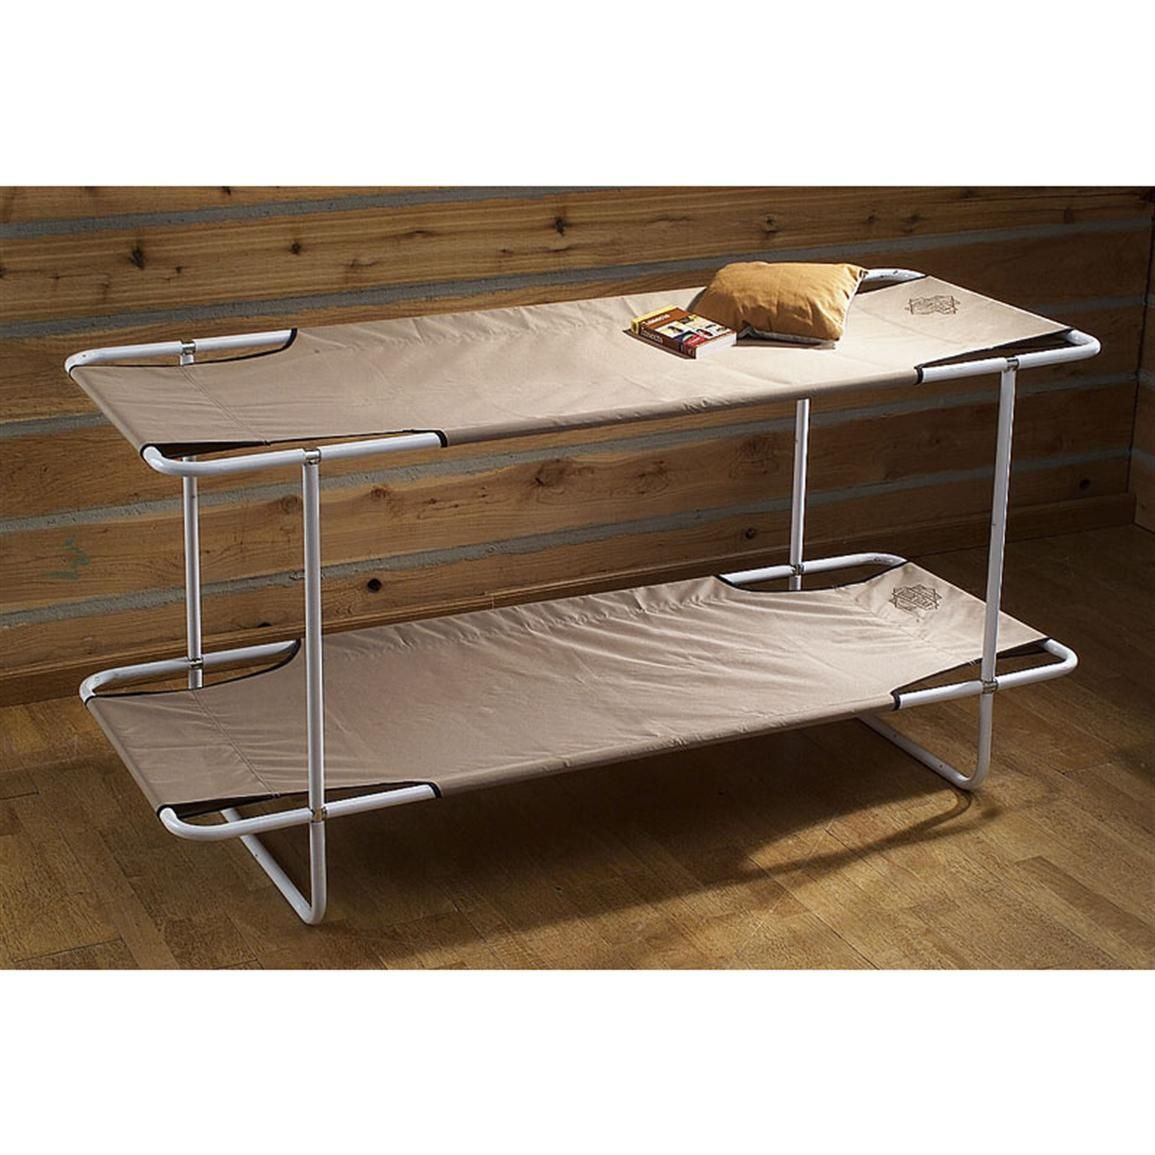 New Camping Cot Bunk Beds Check More At Dust War